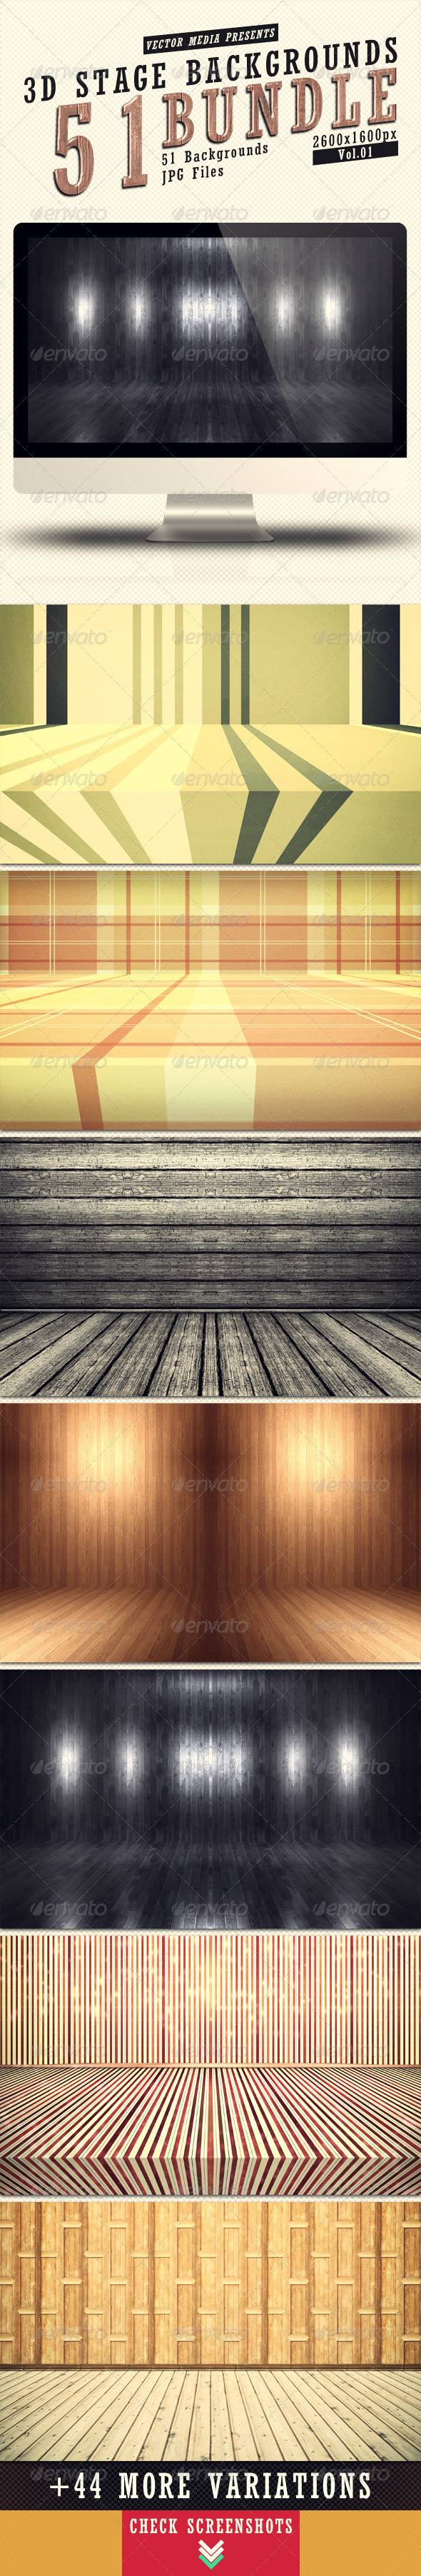 3D Stage Backgrounds - Bundle Vol.1 - 3D Backgrounds